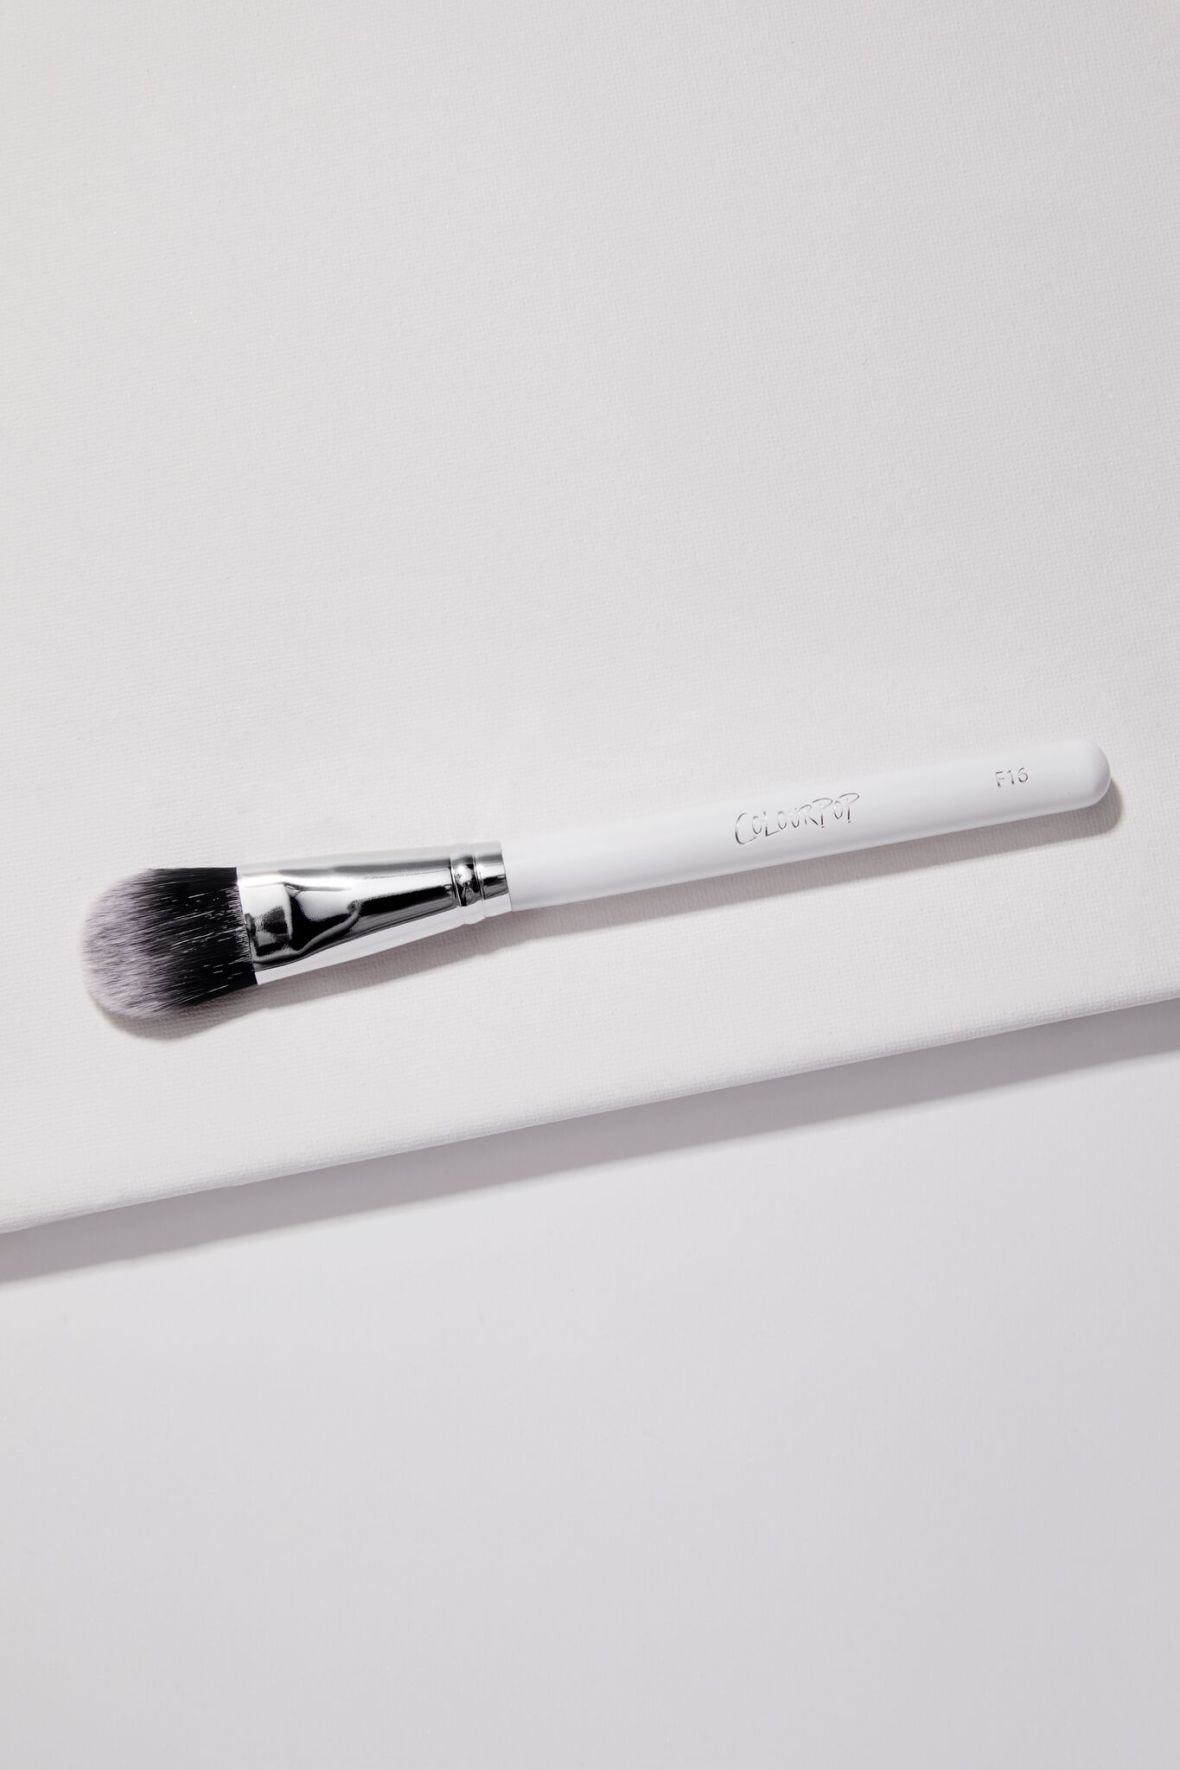 colourpop brush